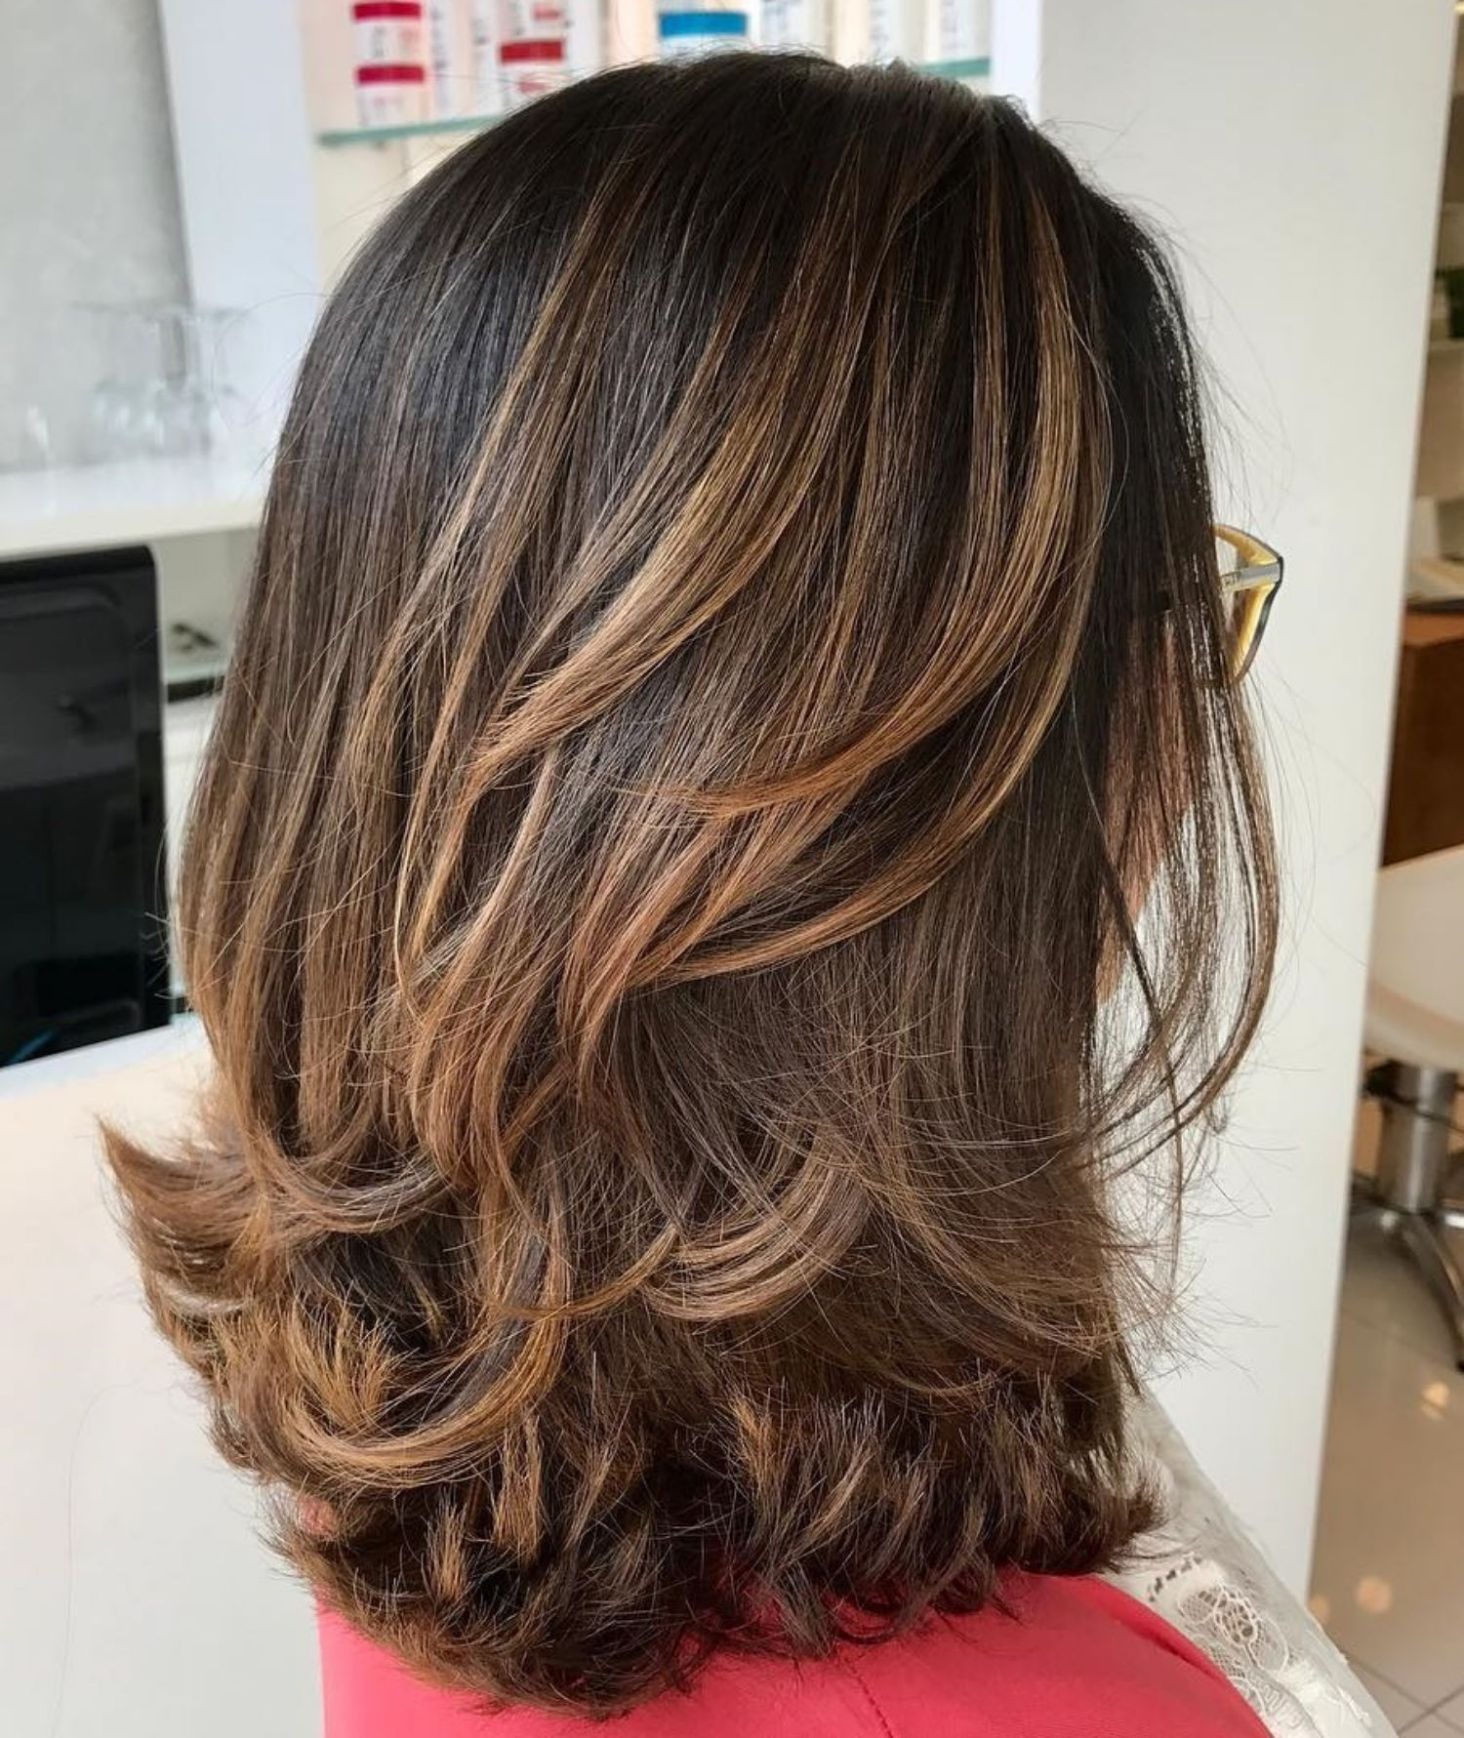 Pin On Pam Hairstyles